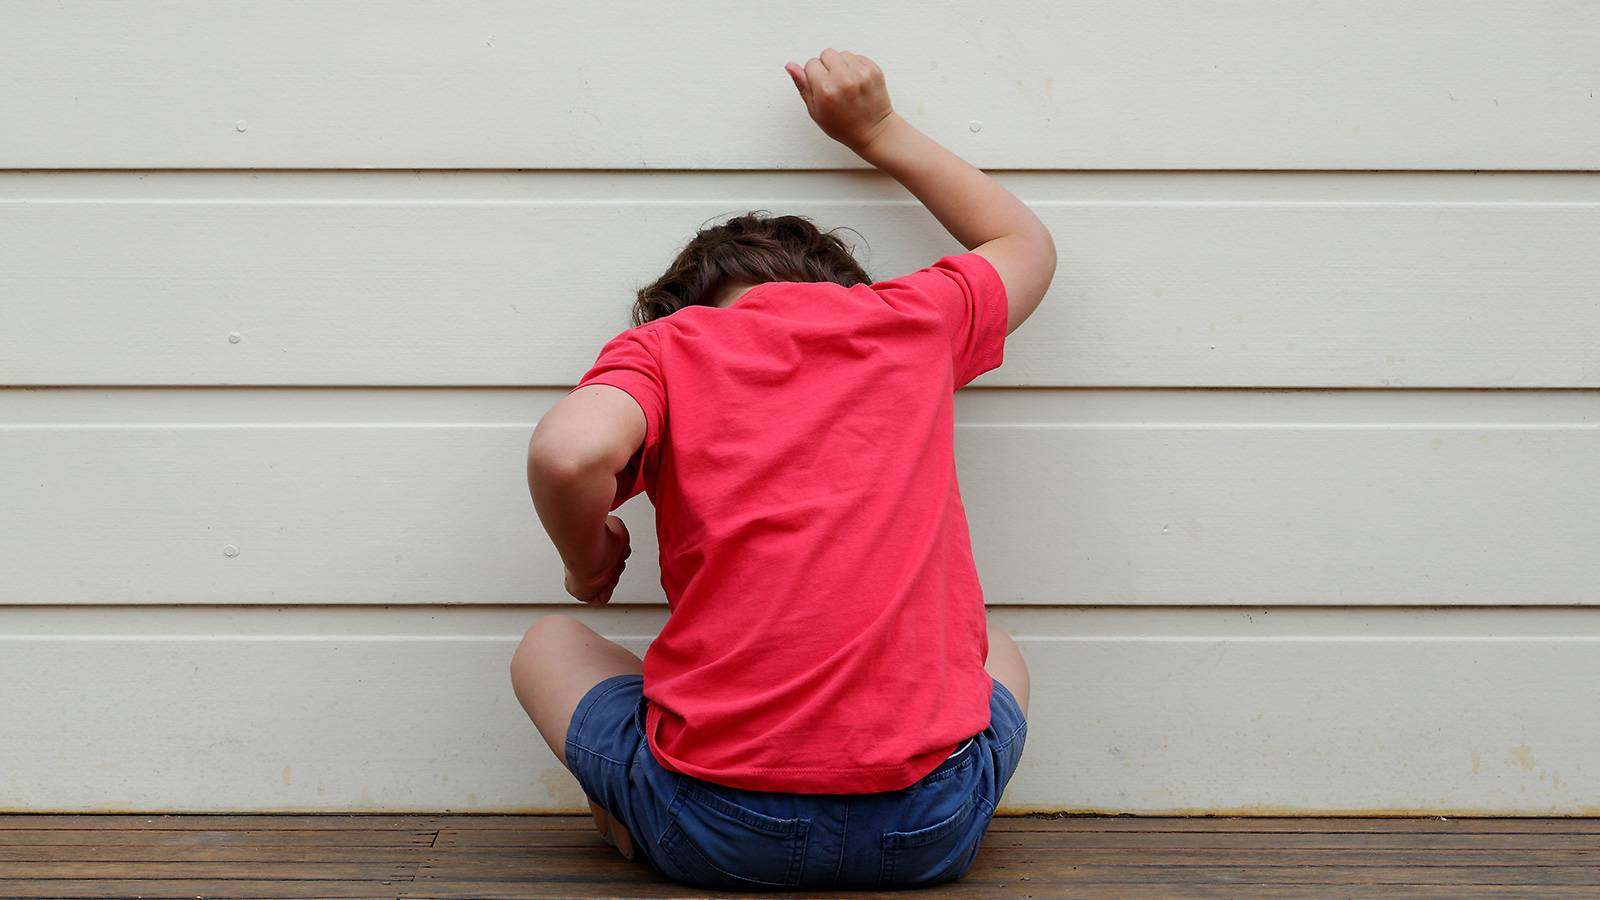 Kids-6-ways-to-help-junior-deal-with-anger-1